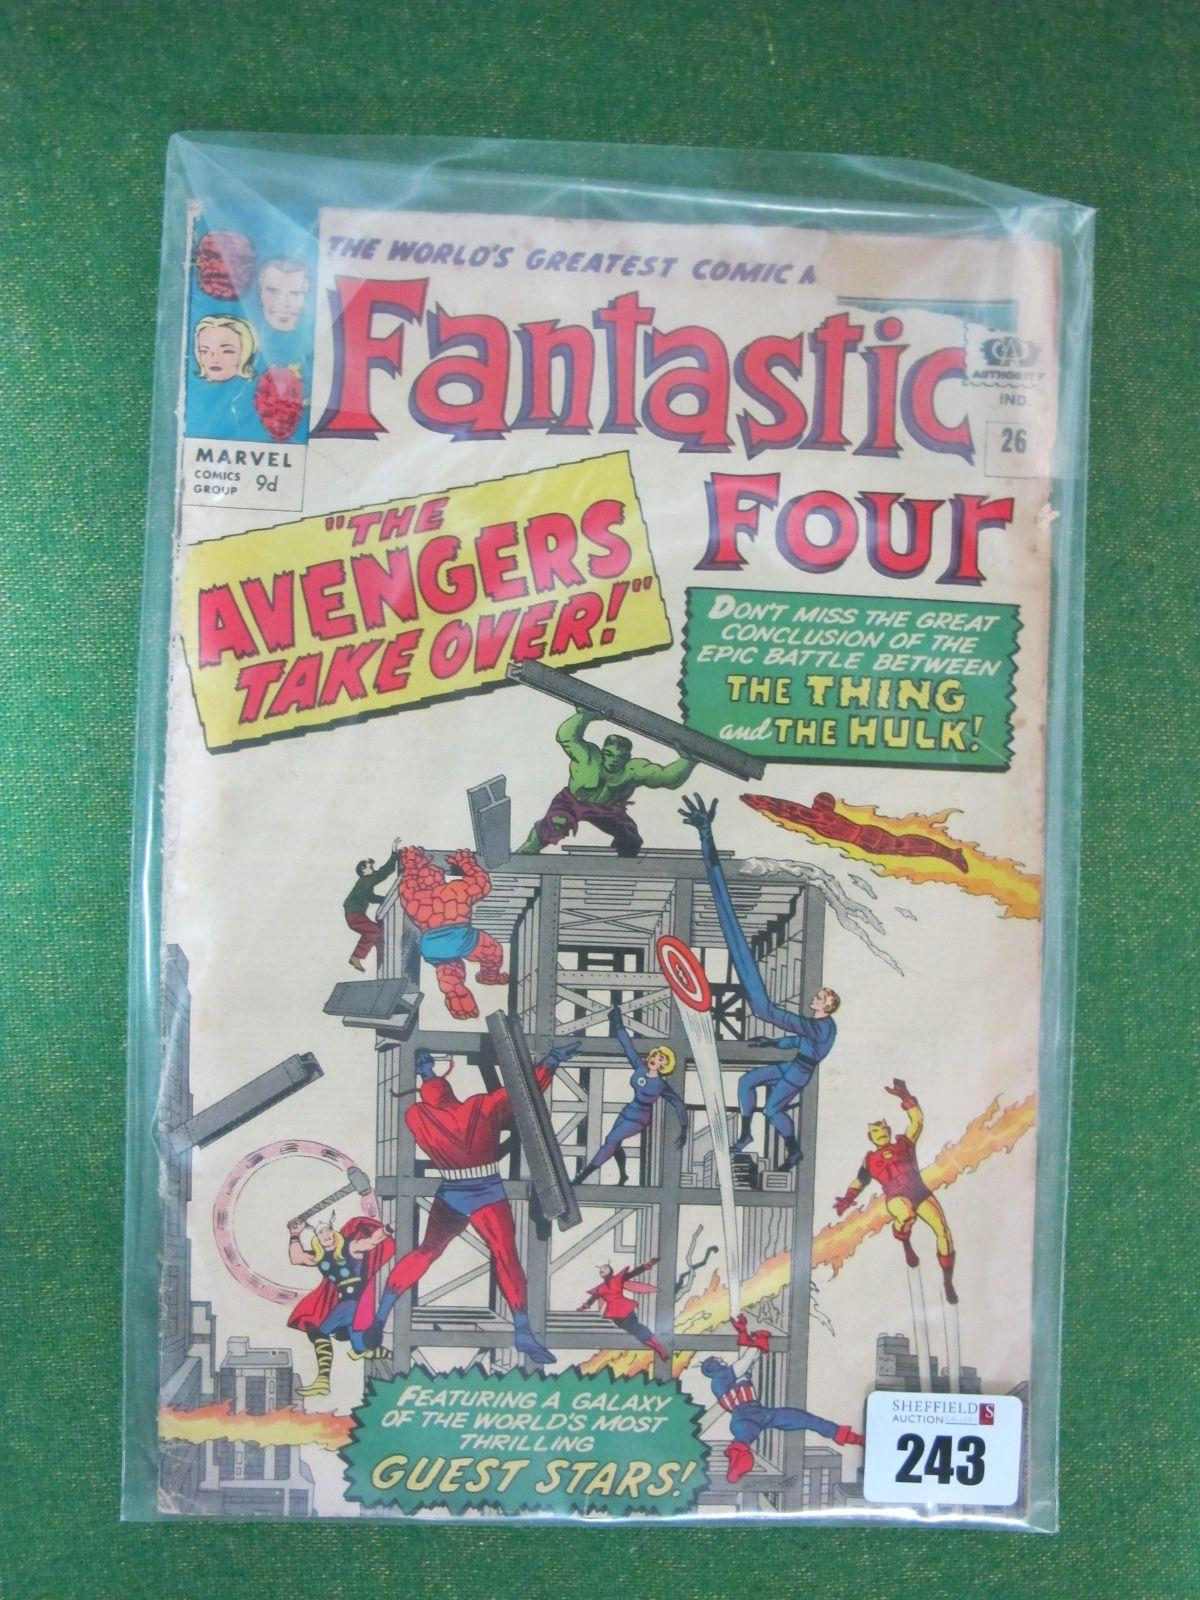 The Fantastic Four #26/No.26, 9d, in used well read condition.